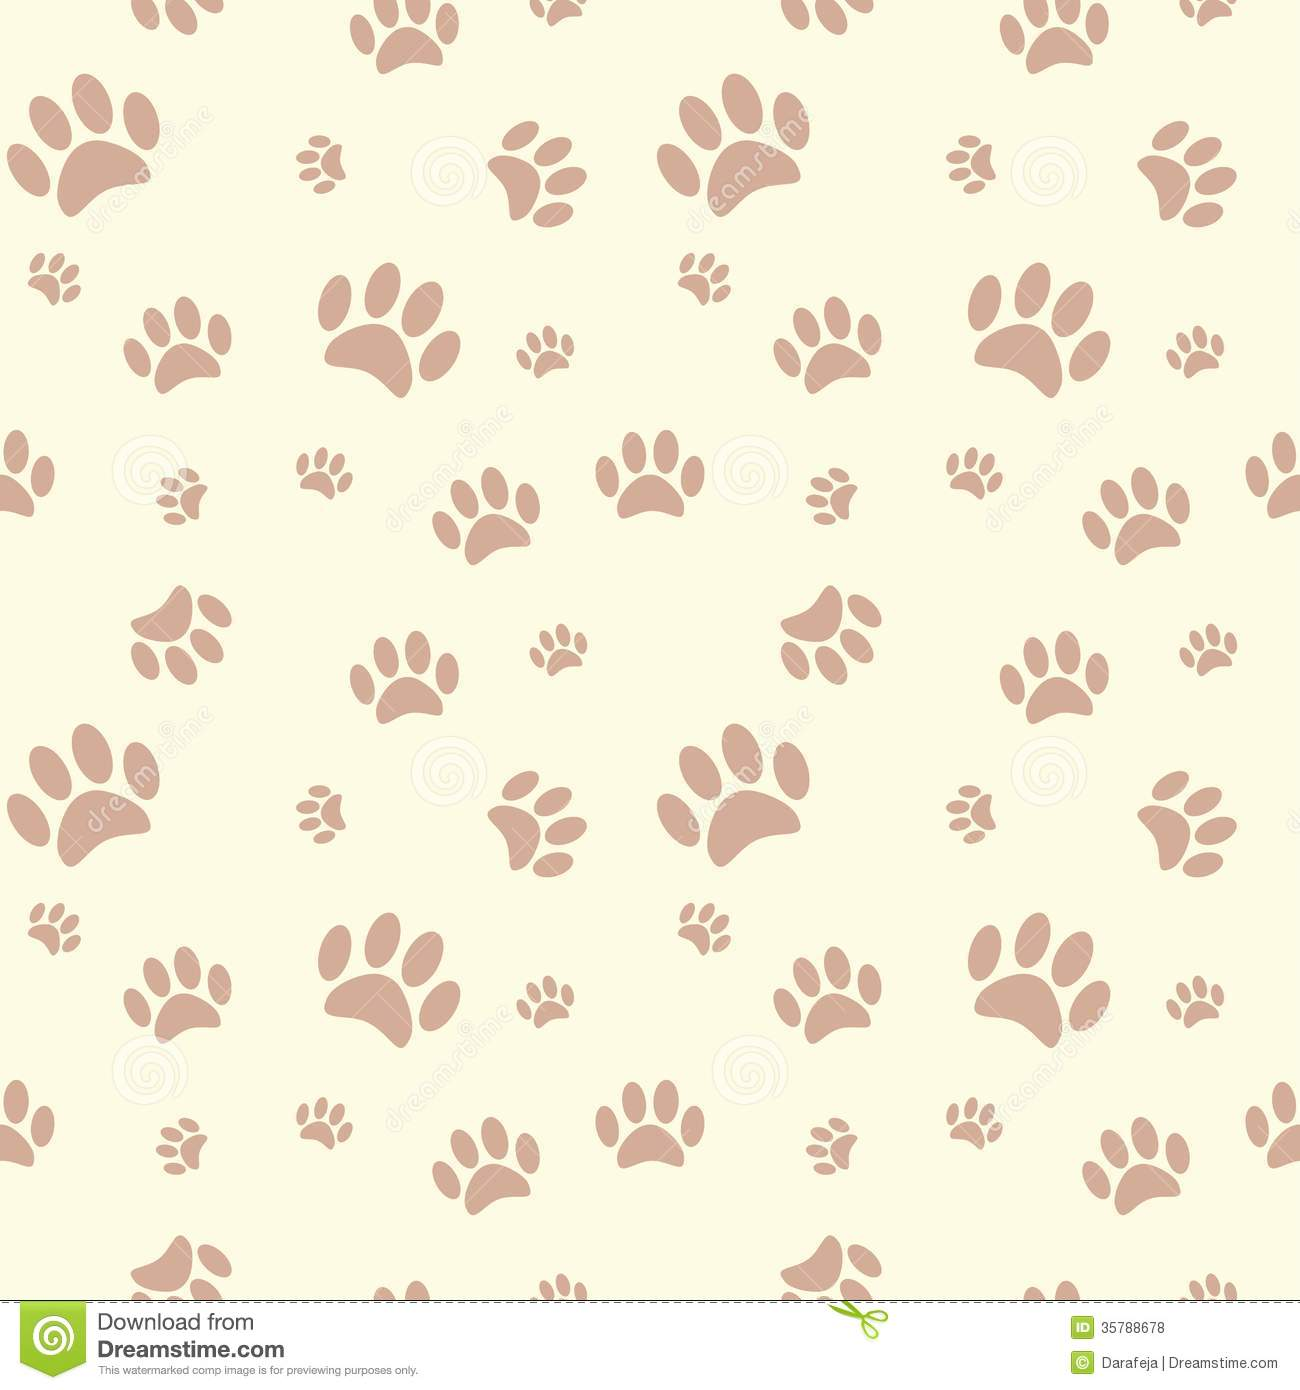 Dog background wallpapers gallery background with dog voltagebd Choice Image